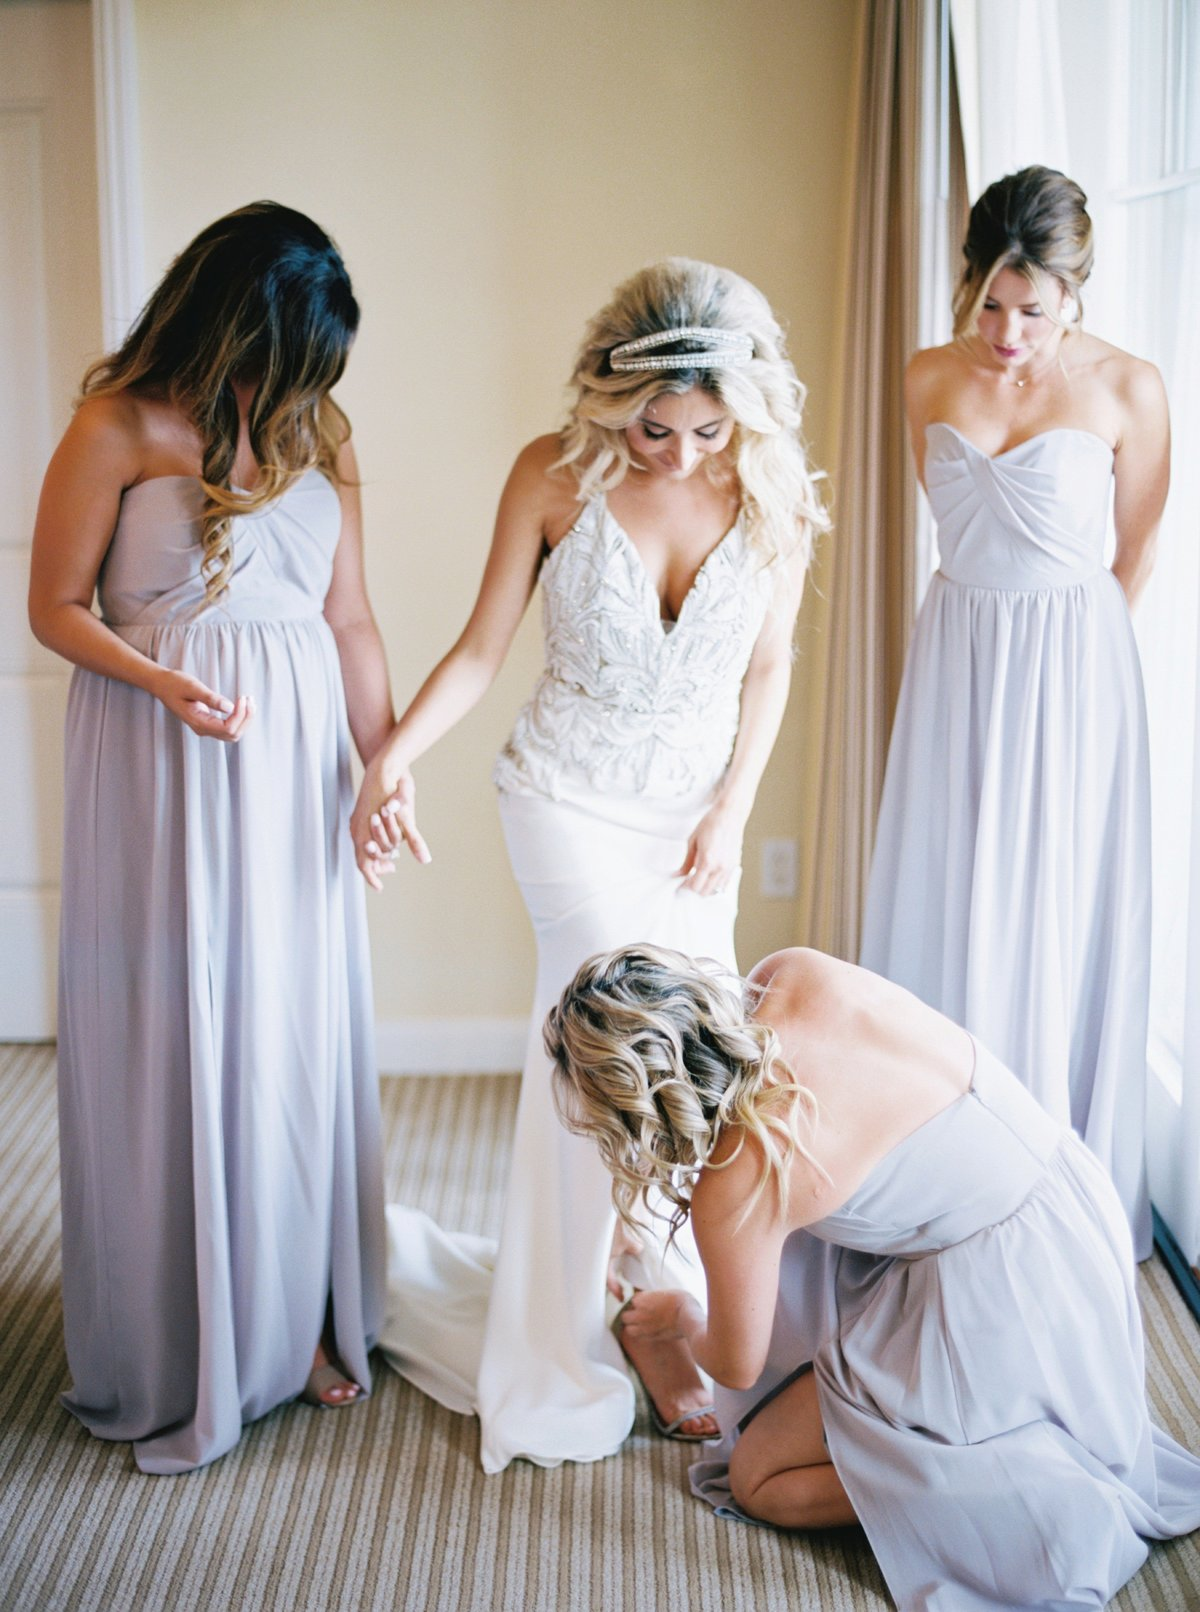 nicoleclareyphotography_evan+jeff_laguna beach_wedding_0035